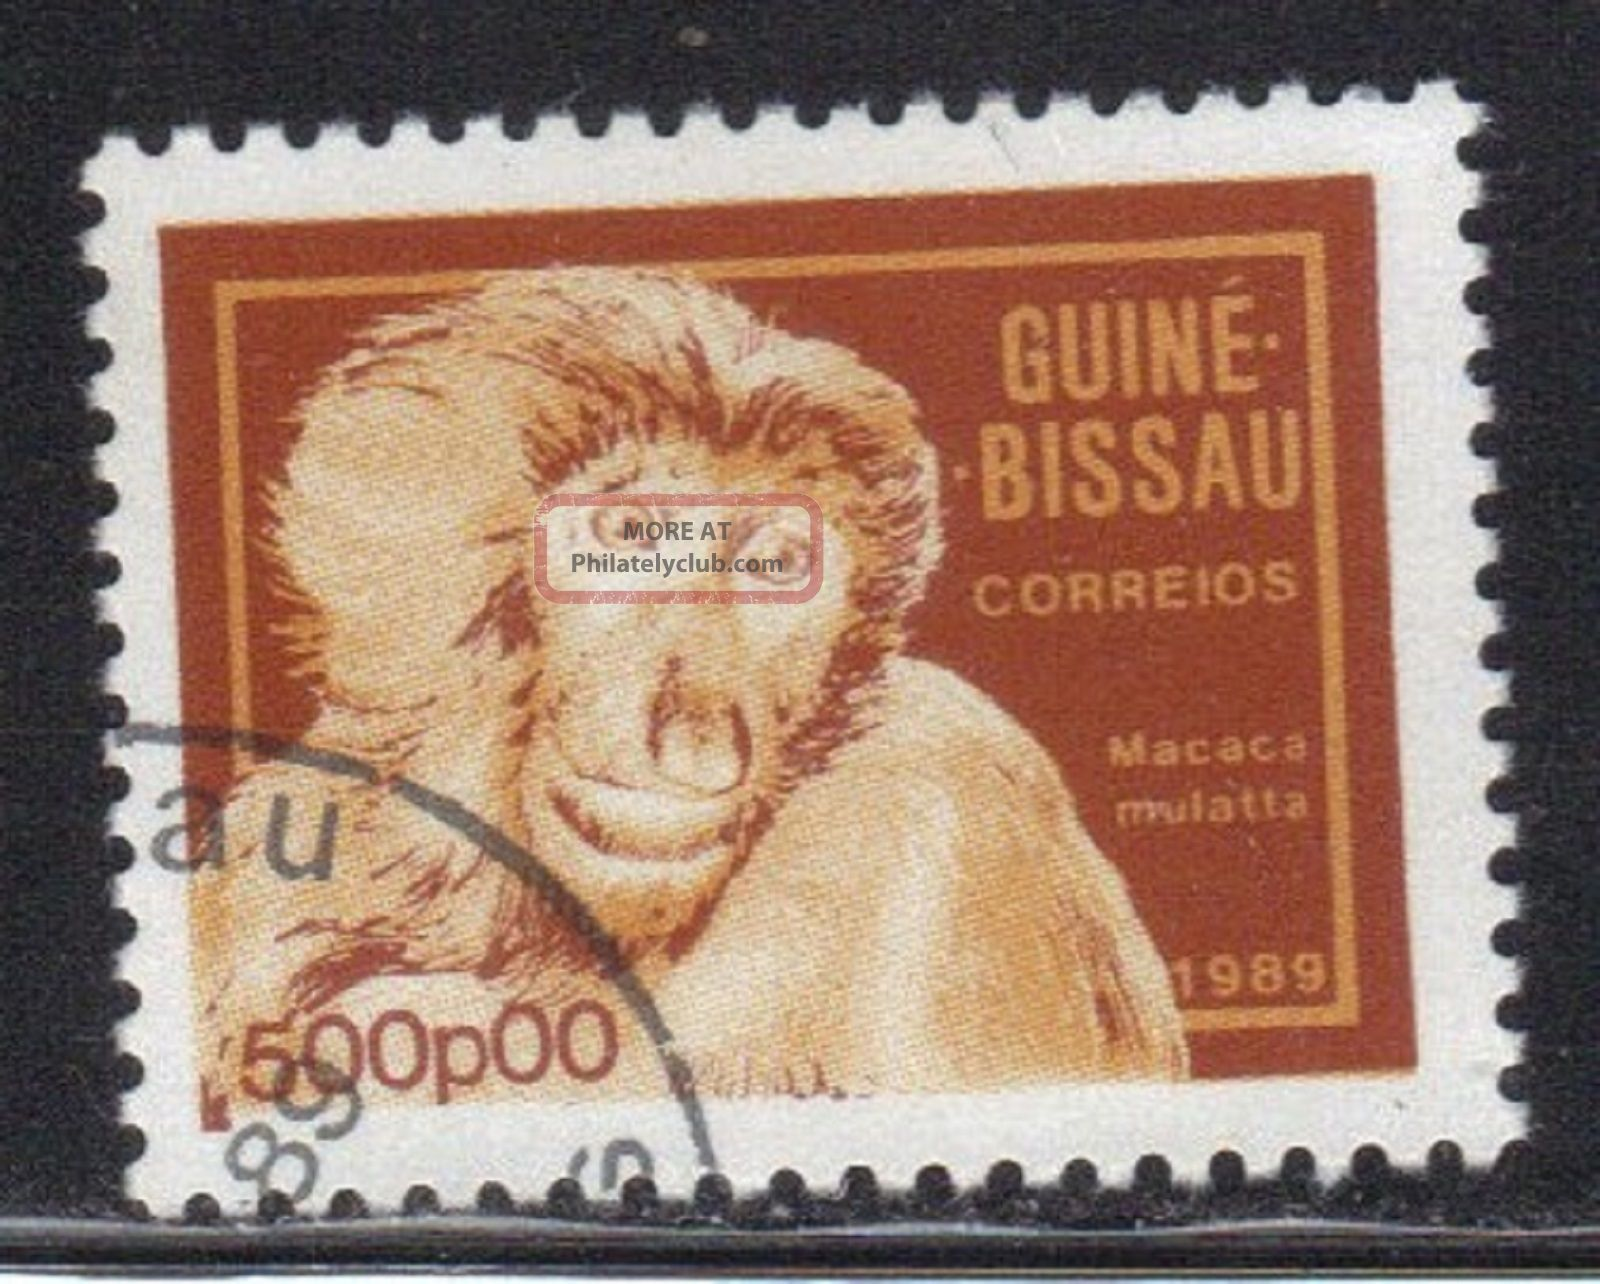 Guinea Bissau Stamp Scott 861 Stamp See Photo Africa photo